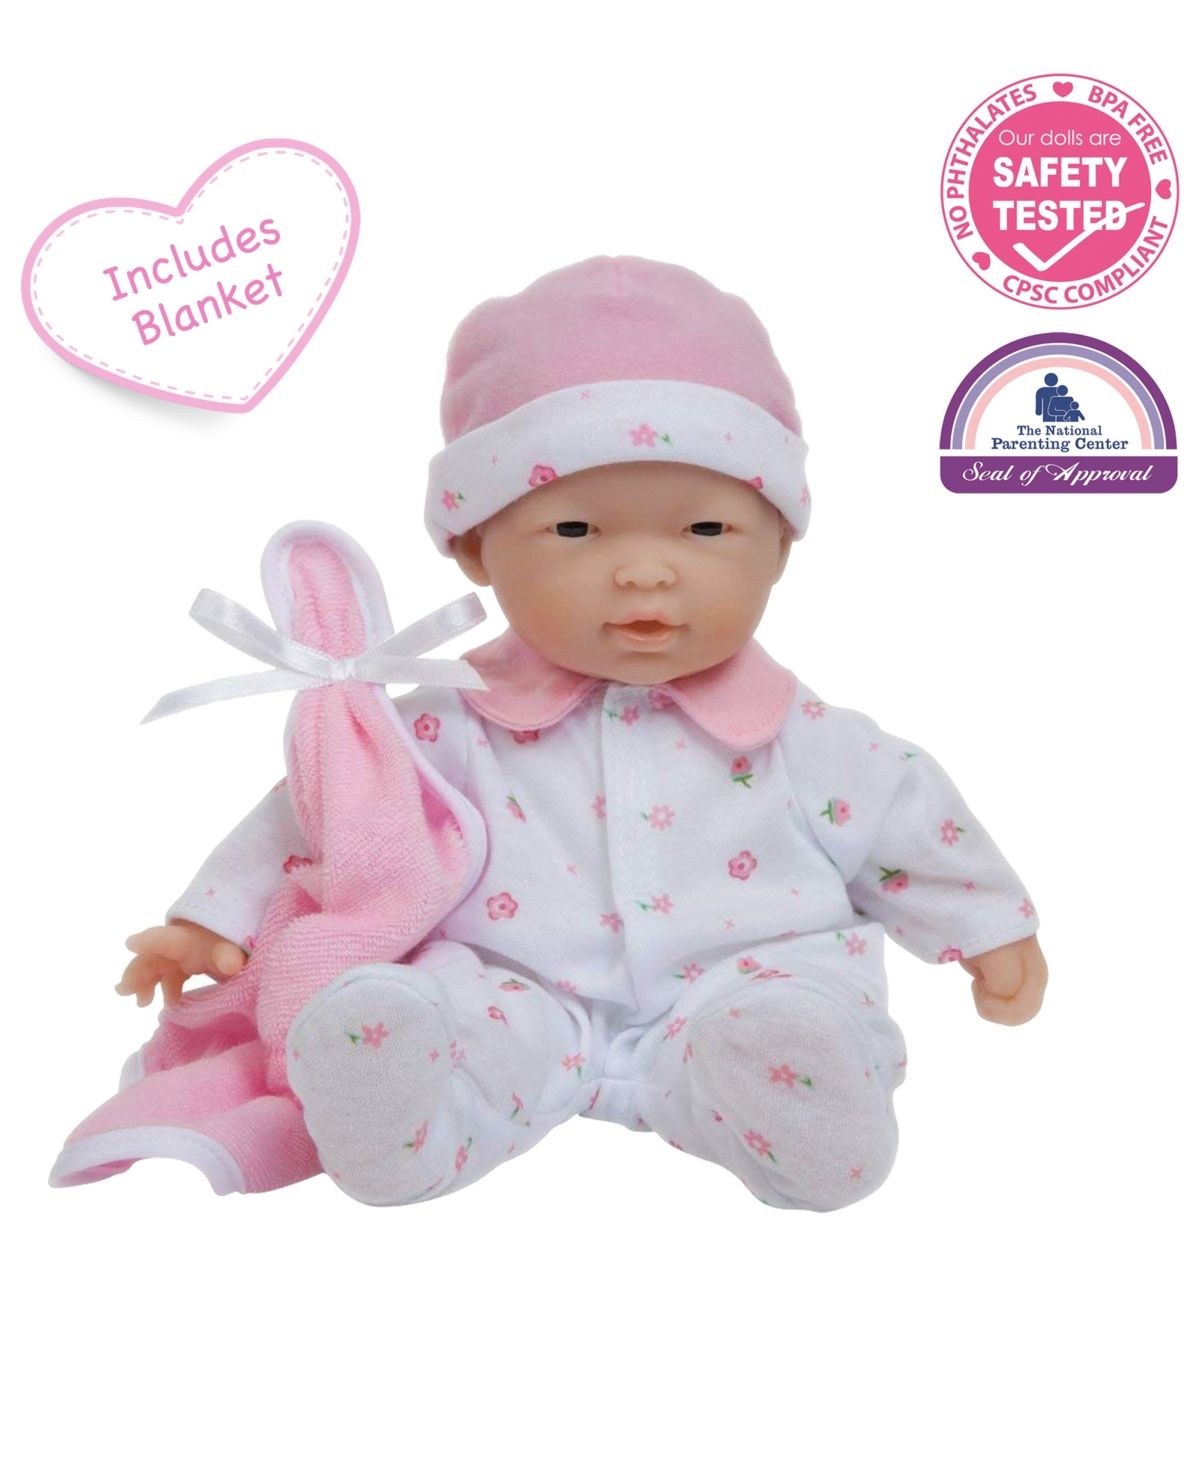 Jc Toys La Baby 11 Inch Pink Washable Soft Body Play Doll For Children 12 Months And Older Designed By Berenguer Dusty Rose La Baby Doll Play Baby